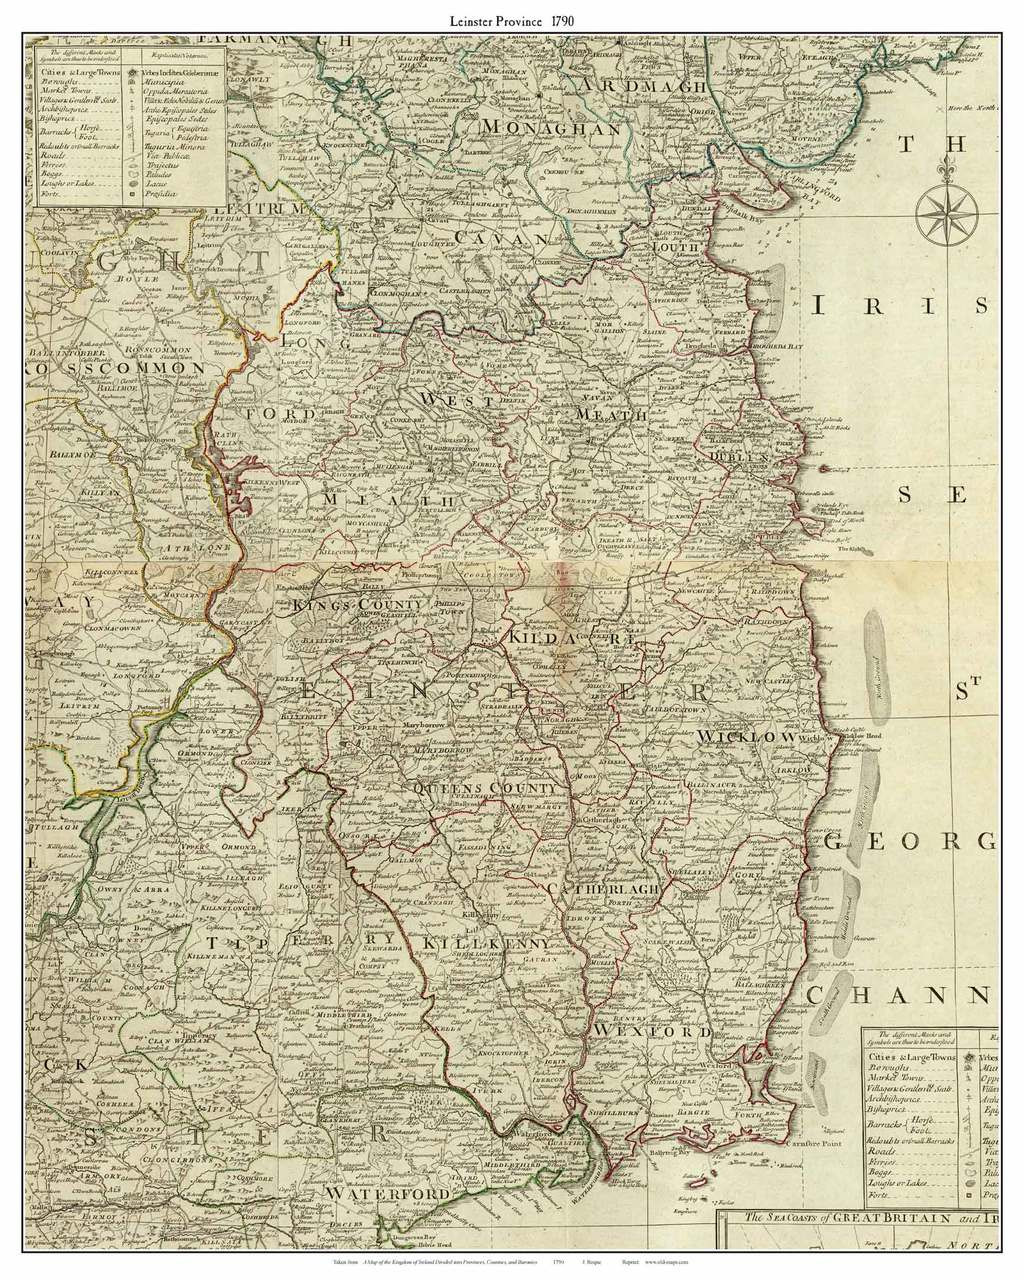 Map Of Ireland Leinster.Ireland Leinster Province 1790 Roque Old Map Custom Print